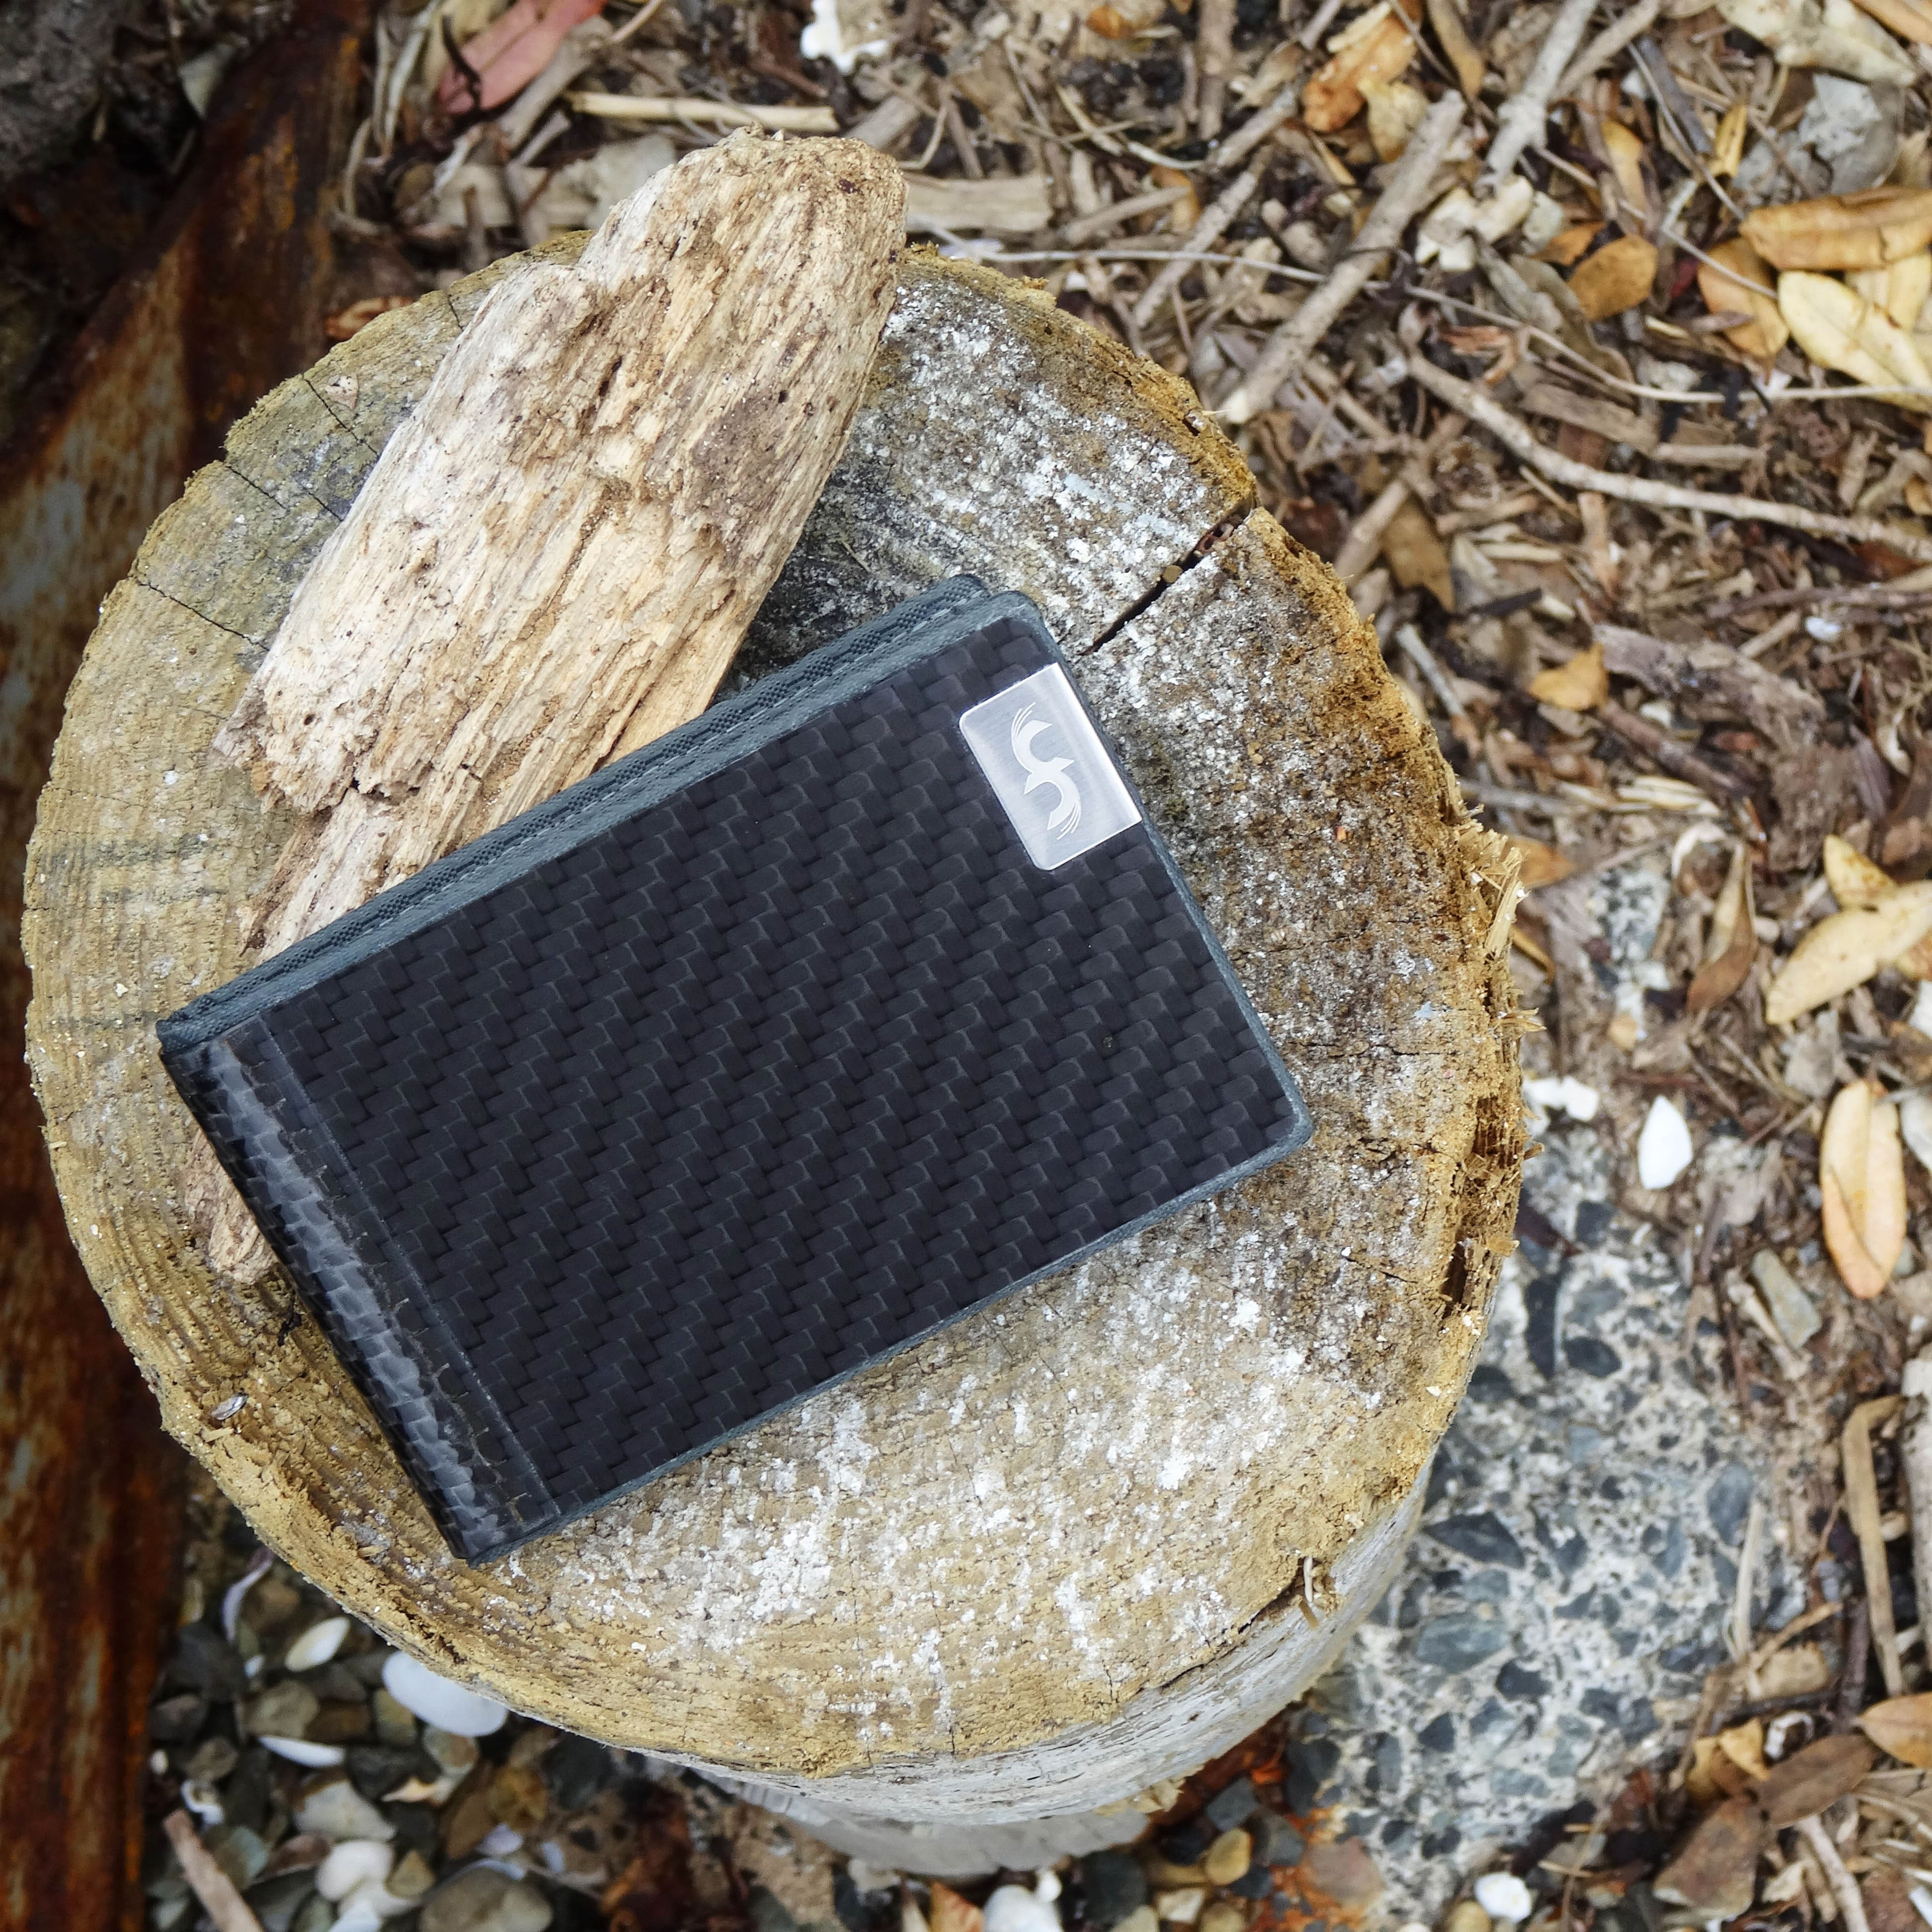 Common Fibers - Carbon Fiber Business Card Holder Wallet